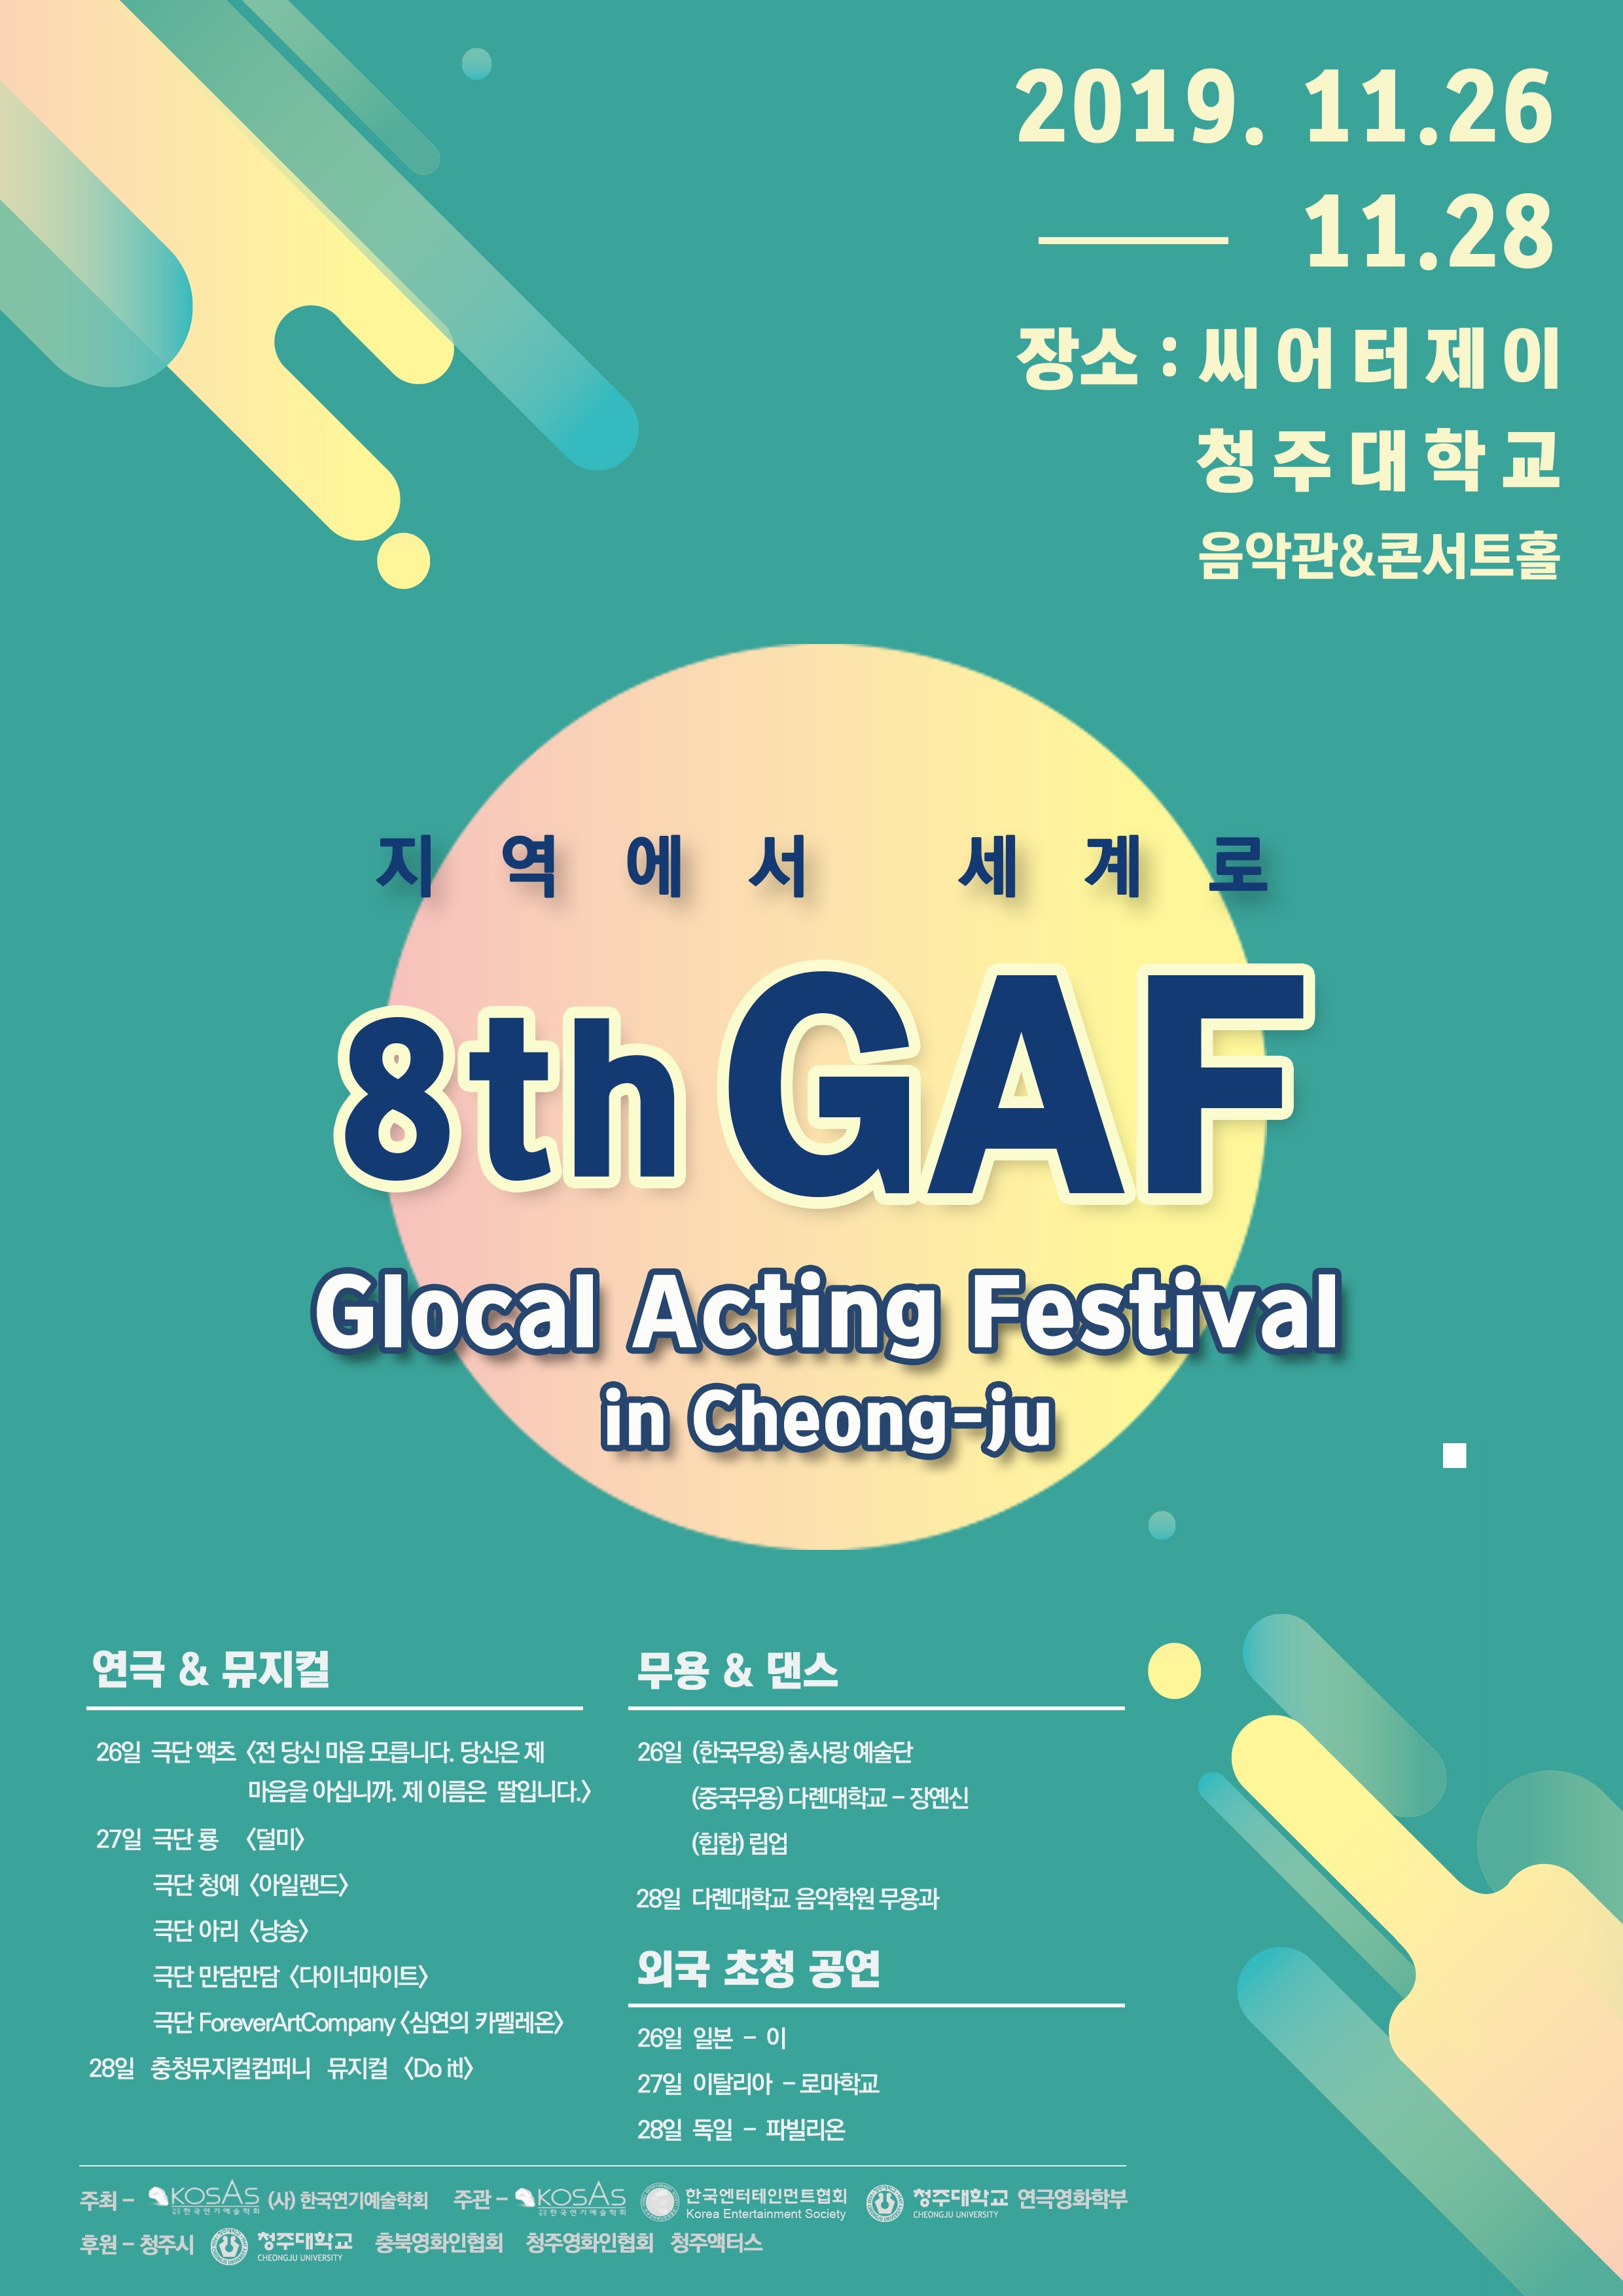 제8회 GAF(Glocal Acting Festival) 개최 안내